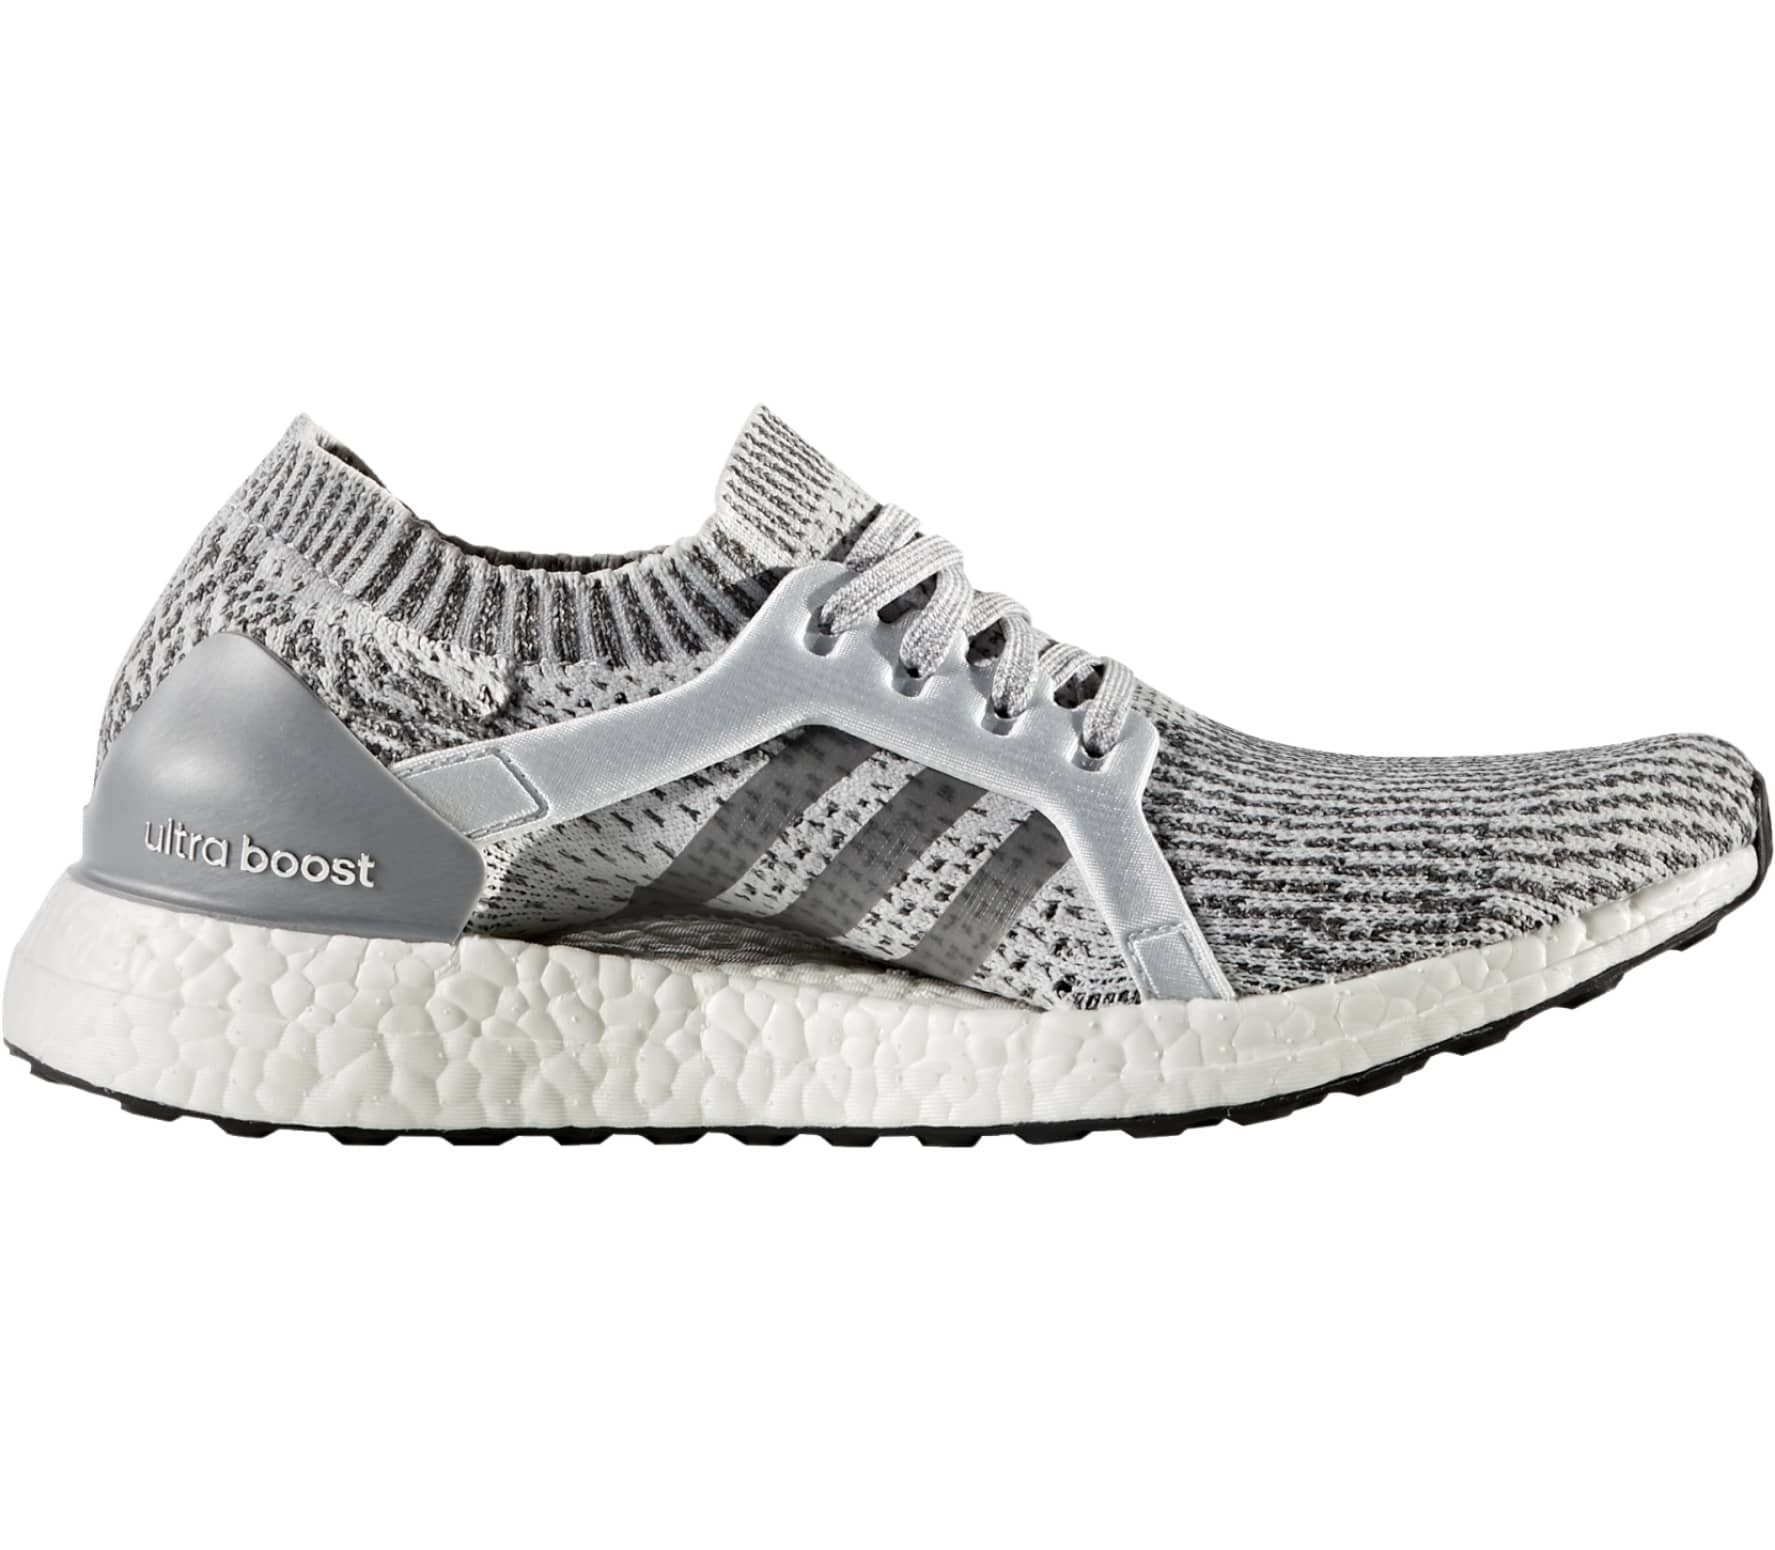 separation shoes fbc53 31e11 Adidas - Ultra Boost X zapatillas de running para mujer (grisblanco)